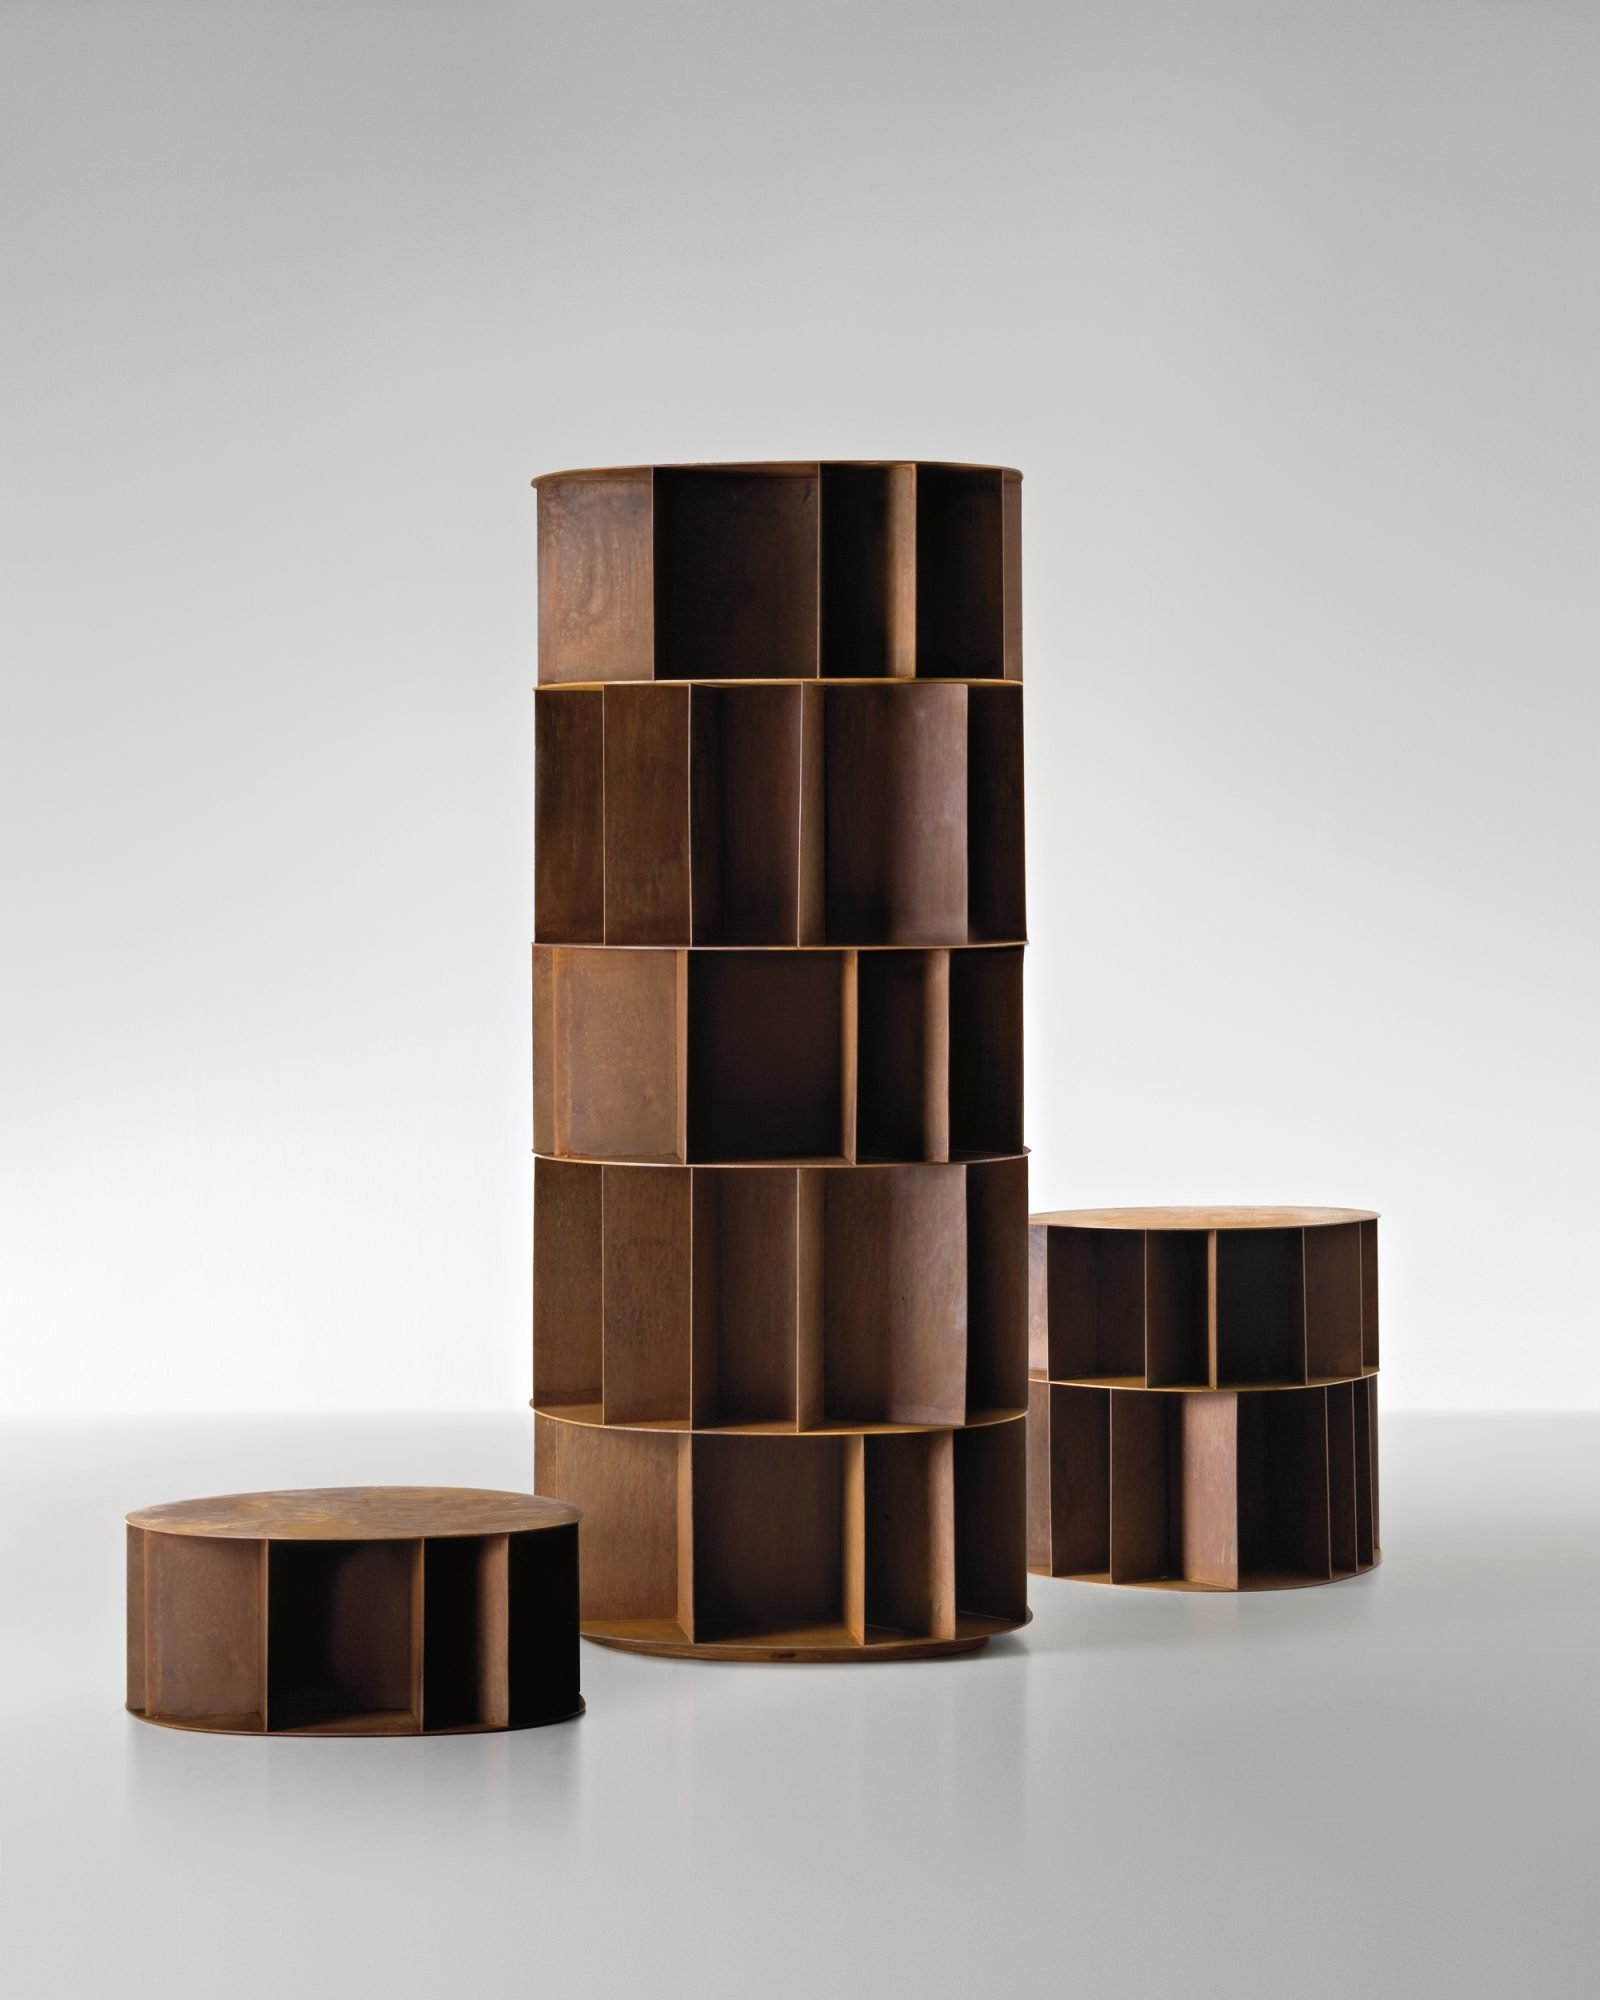 Existence Bookcase from De Castelli, designed by Michele DeLucchi